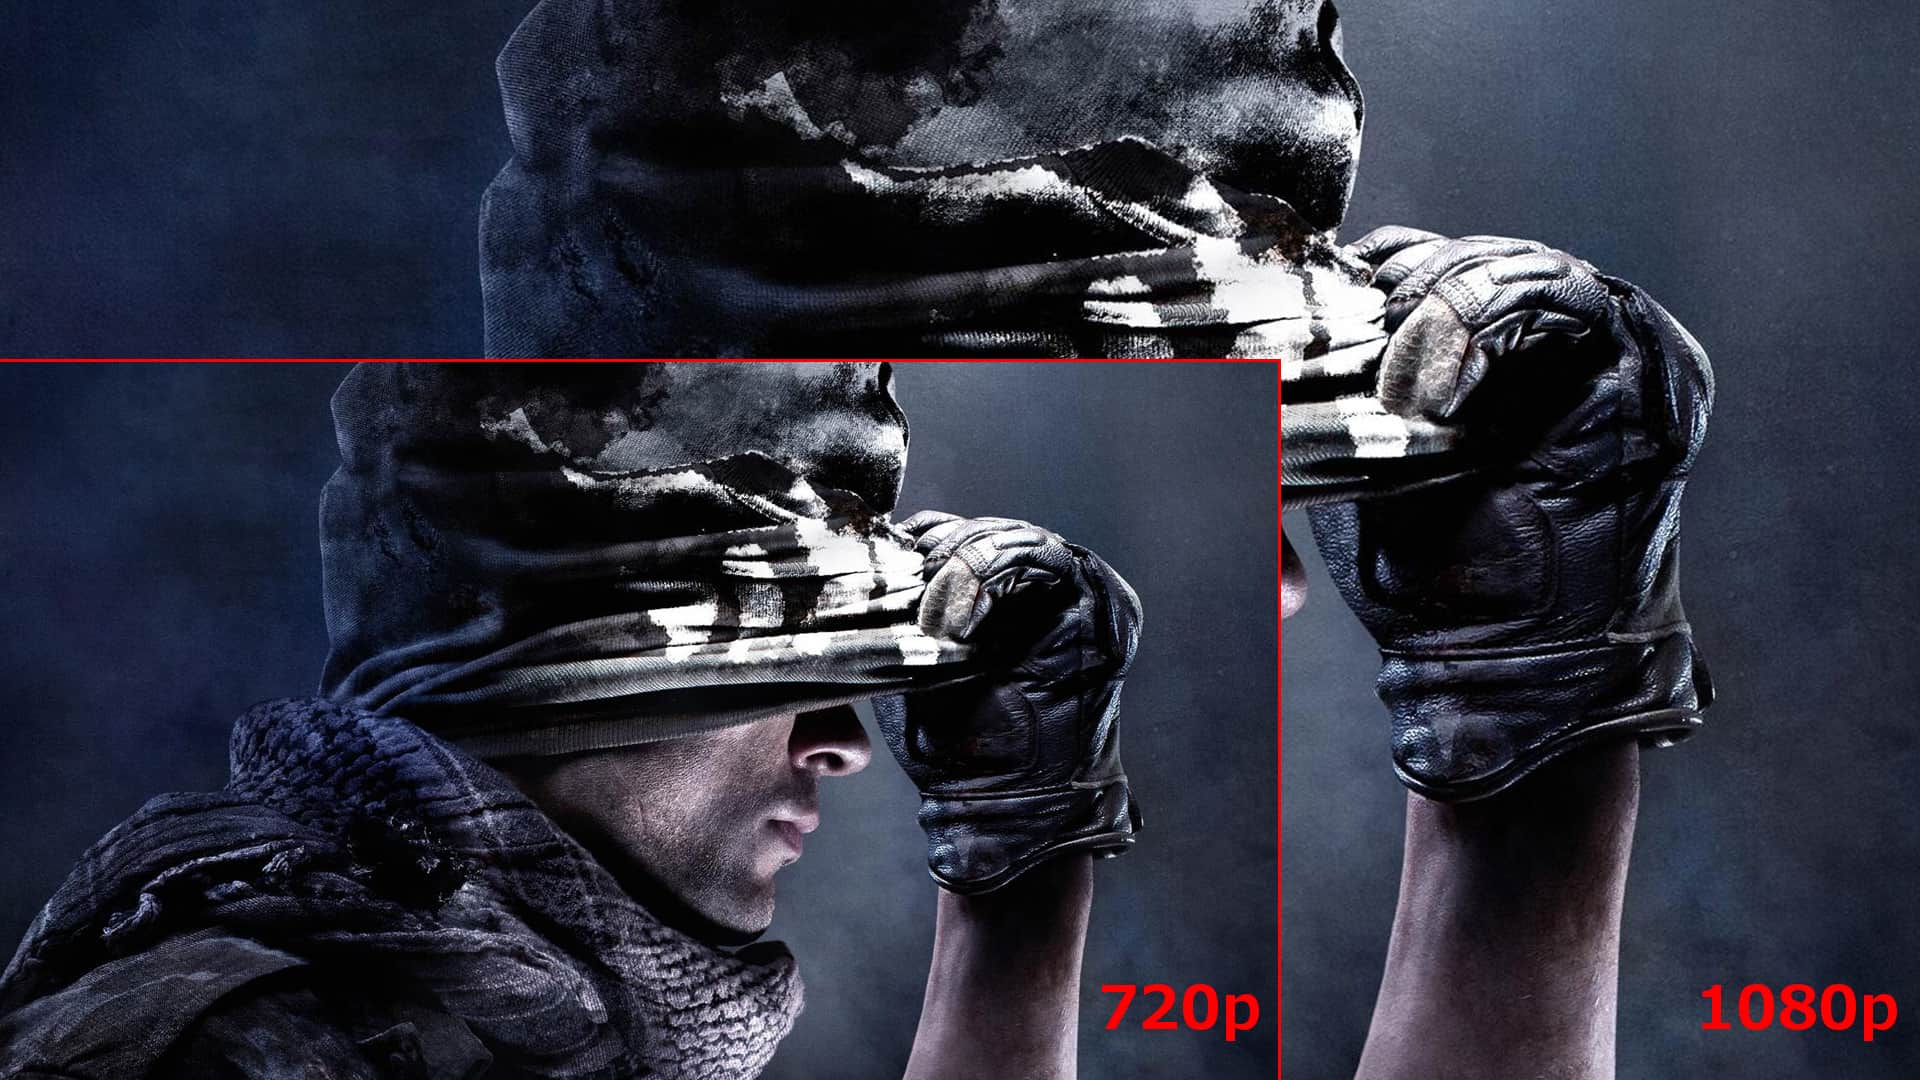 Conferma ufficiale cod ghosts a 720p su xbox one a 1080p su ps4 gameback - 1366x768 is 720p or 1080p ...